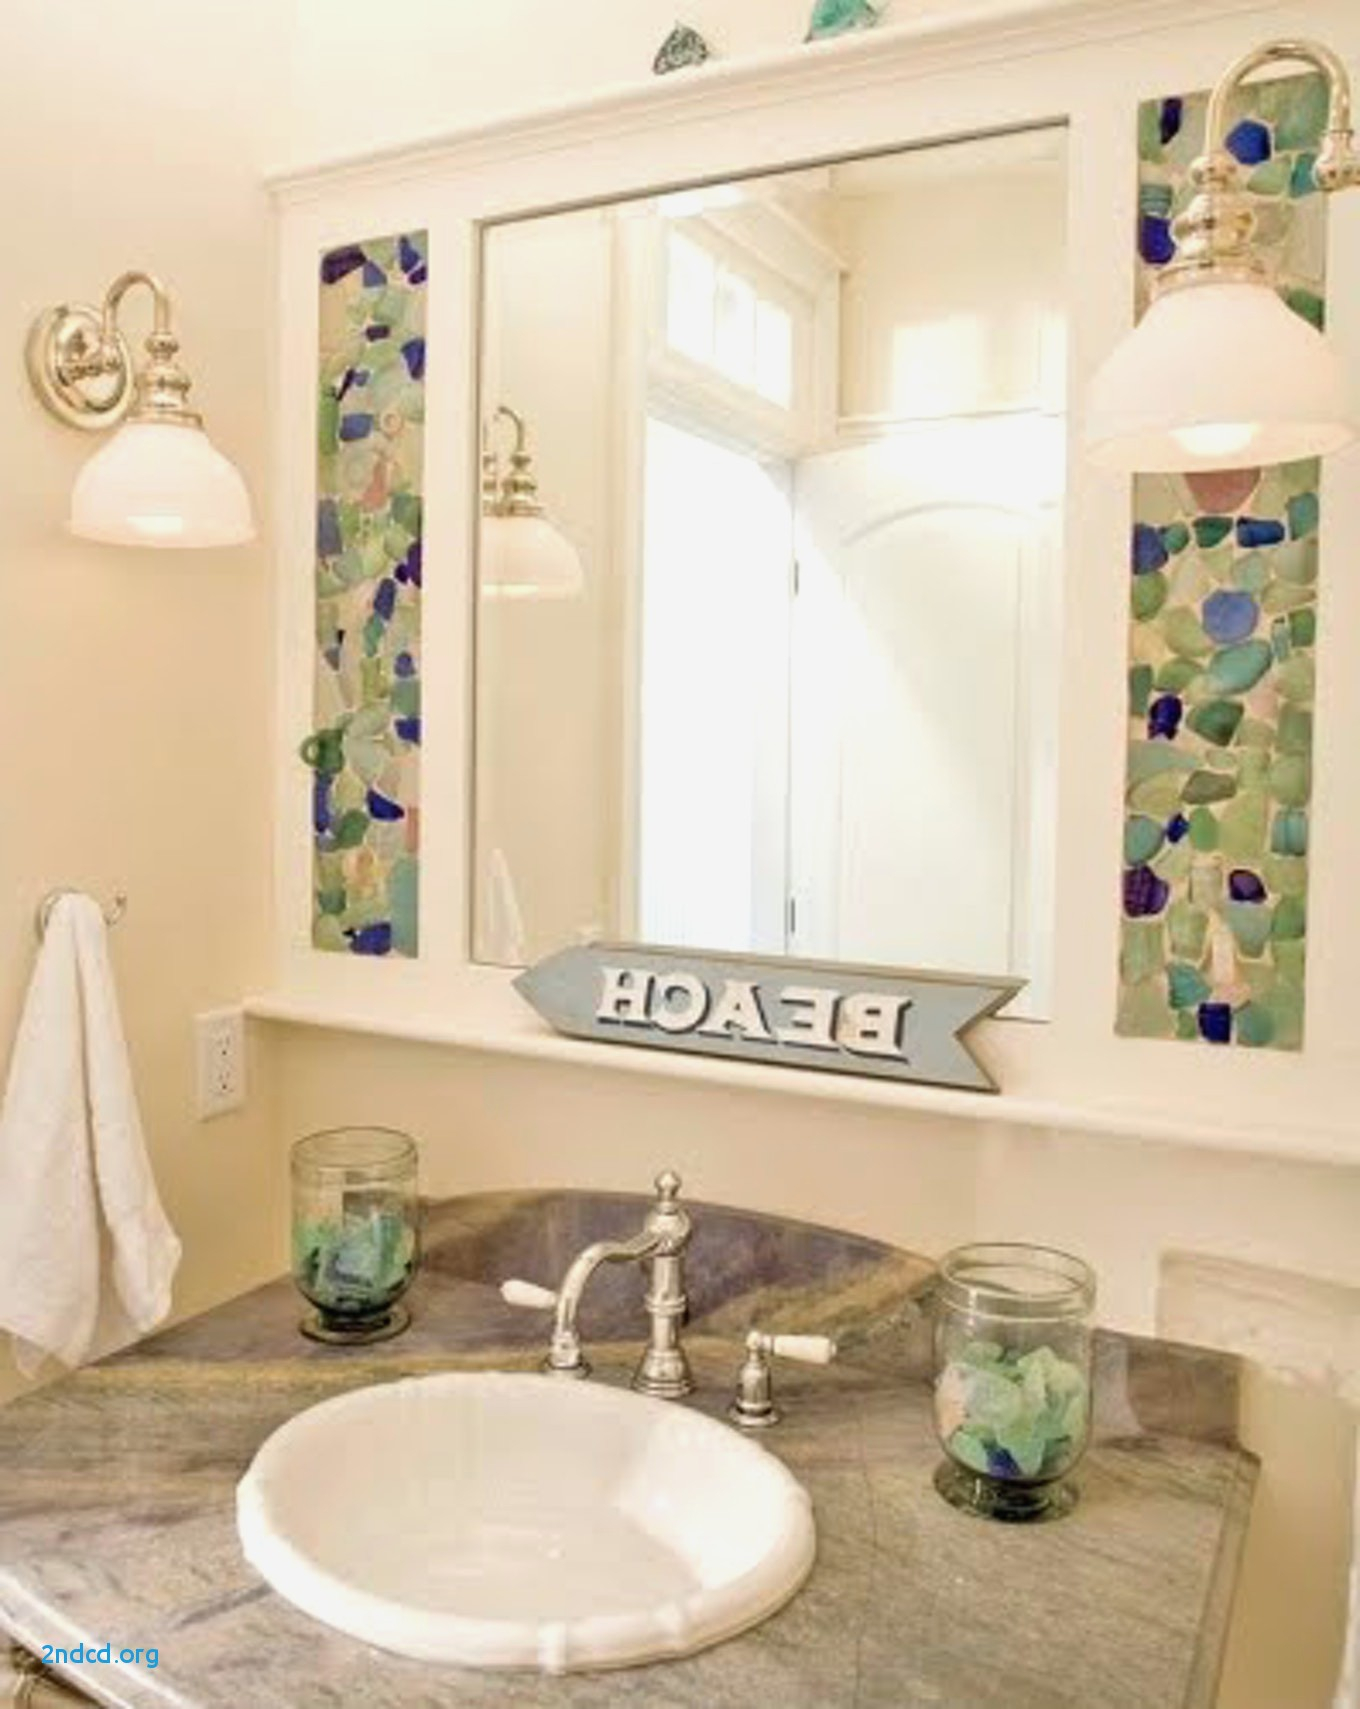 Epic Best Of Beach Themed Bathroom Mirrors - 2Ndcd : 2Ndcd in Awesome Beach Themed Bathroom Mirrors